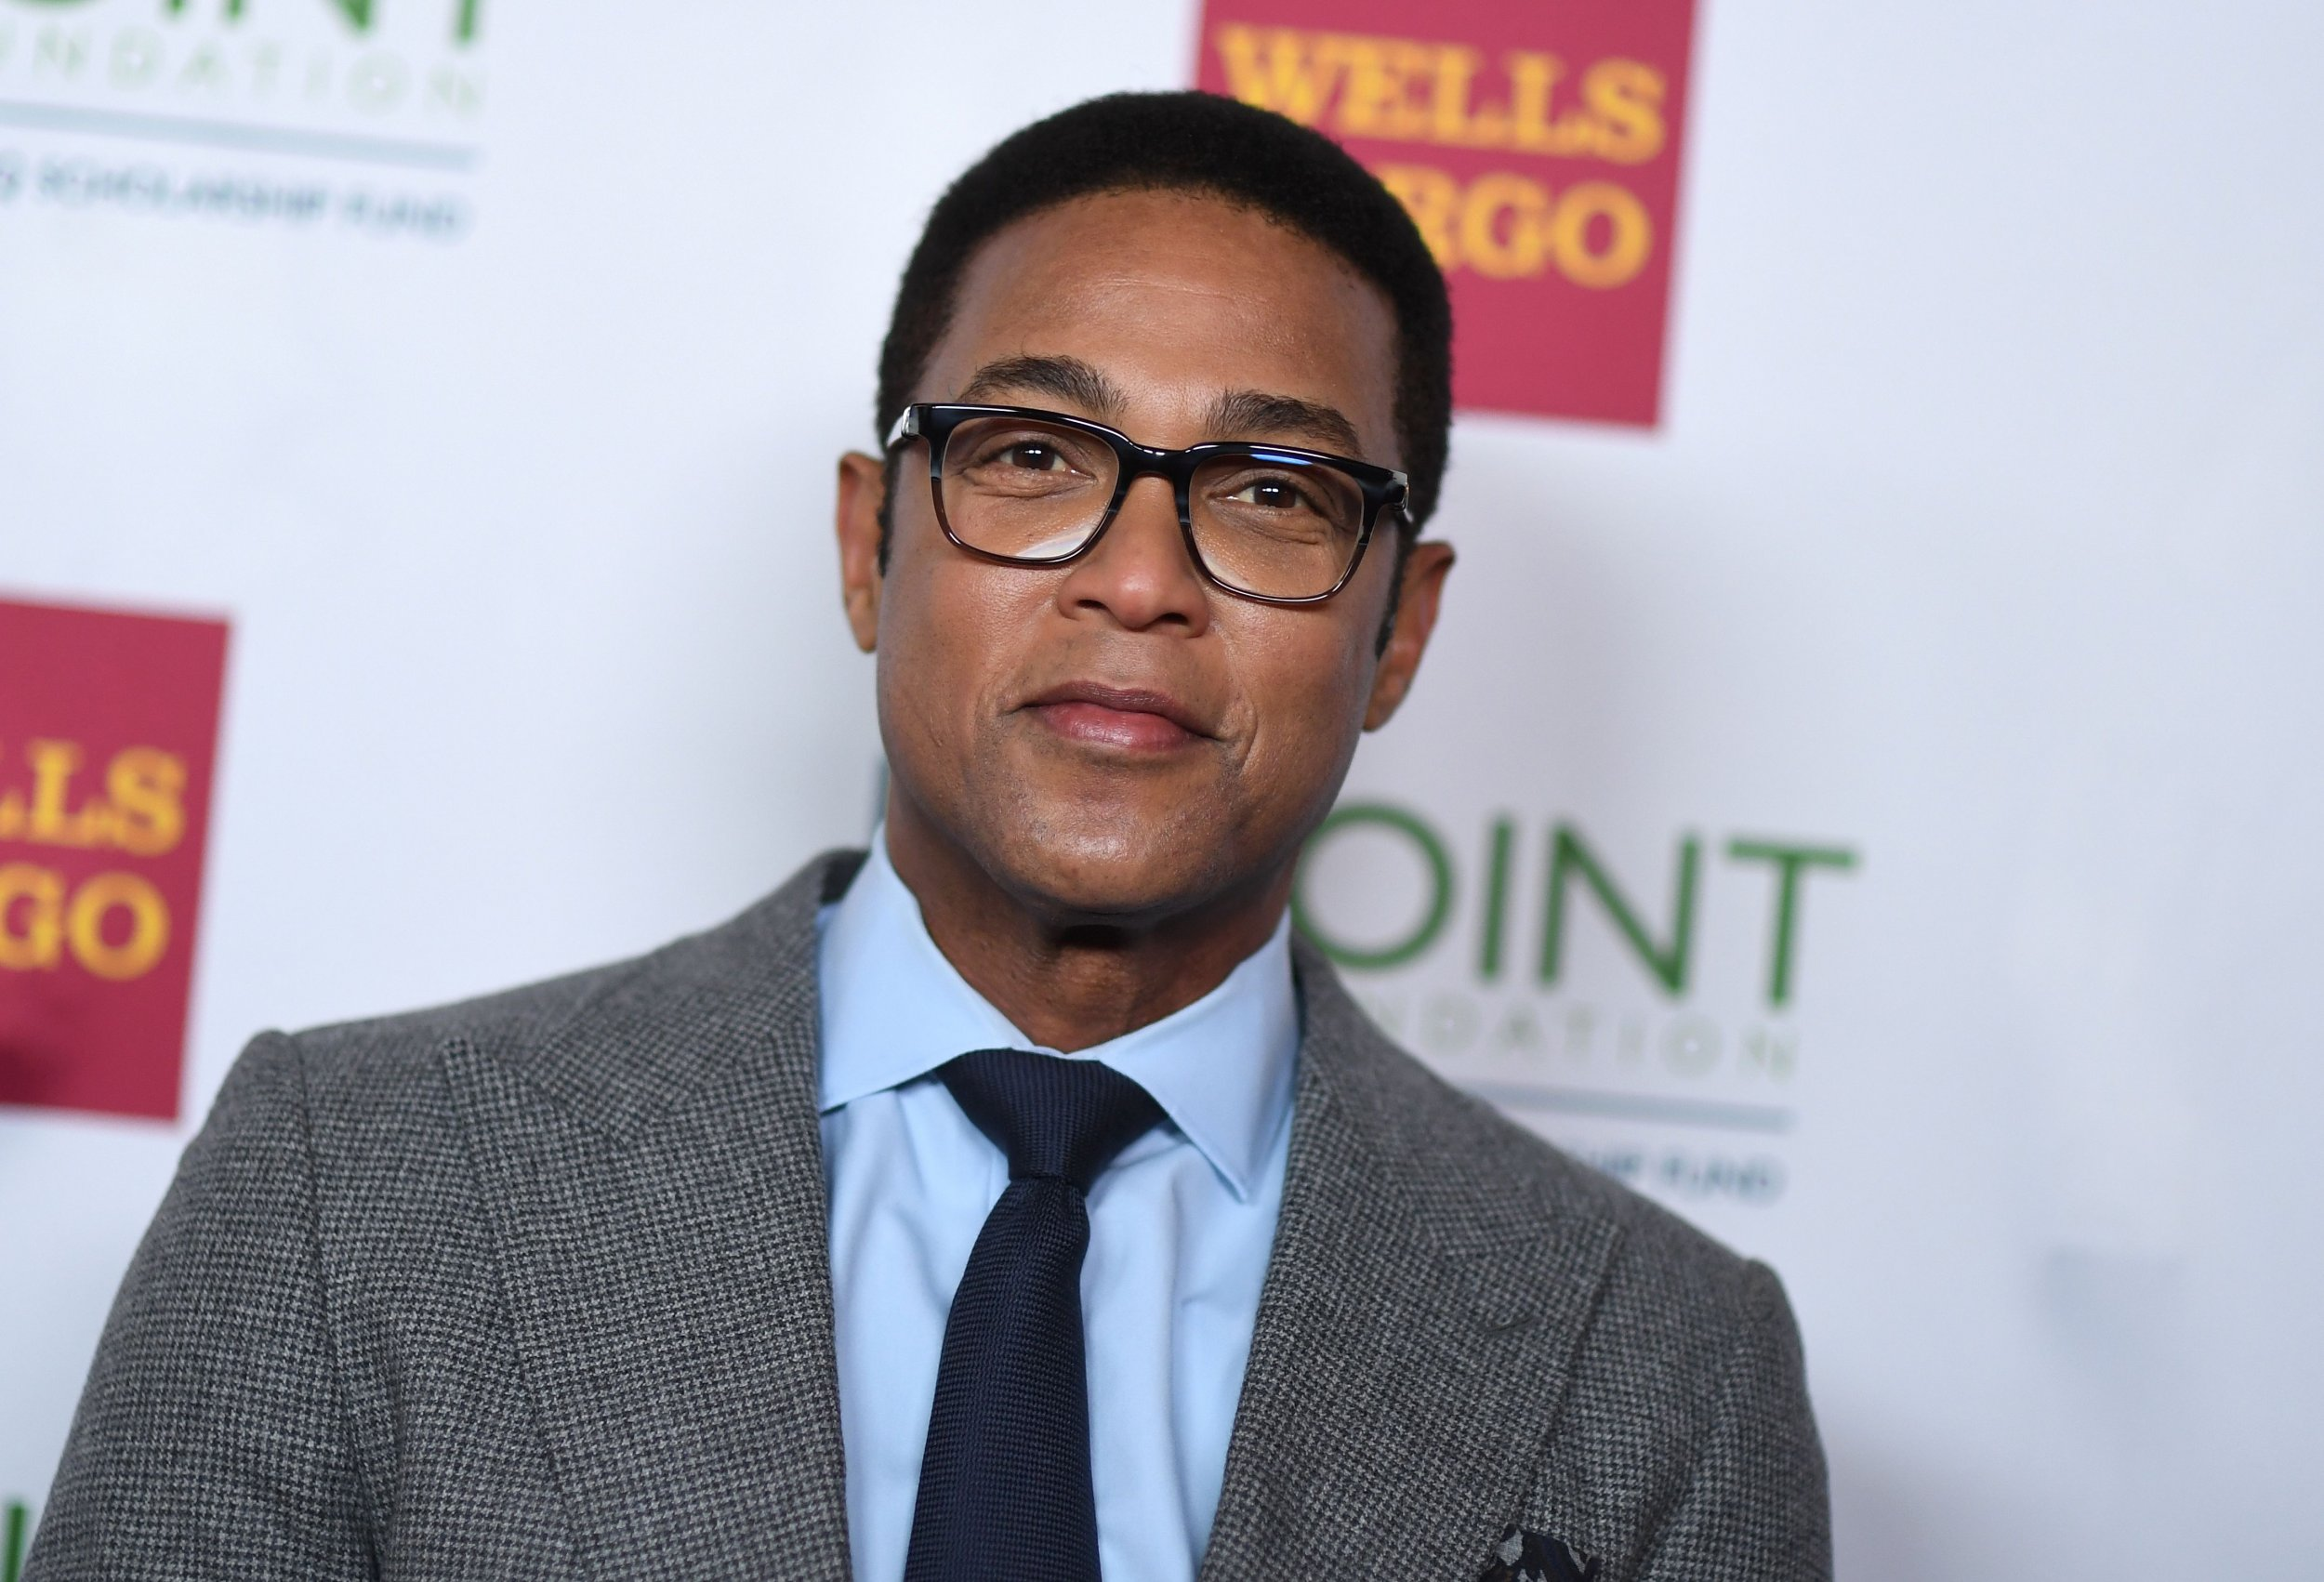 Don Lemon says on CNN the biggest terror threat to the US is white men pictures